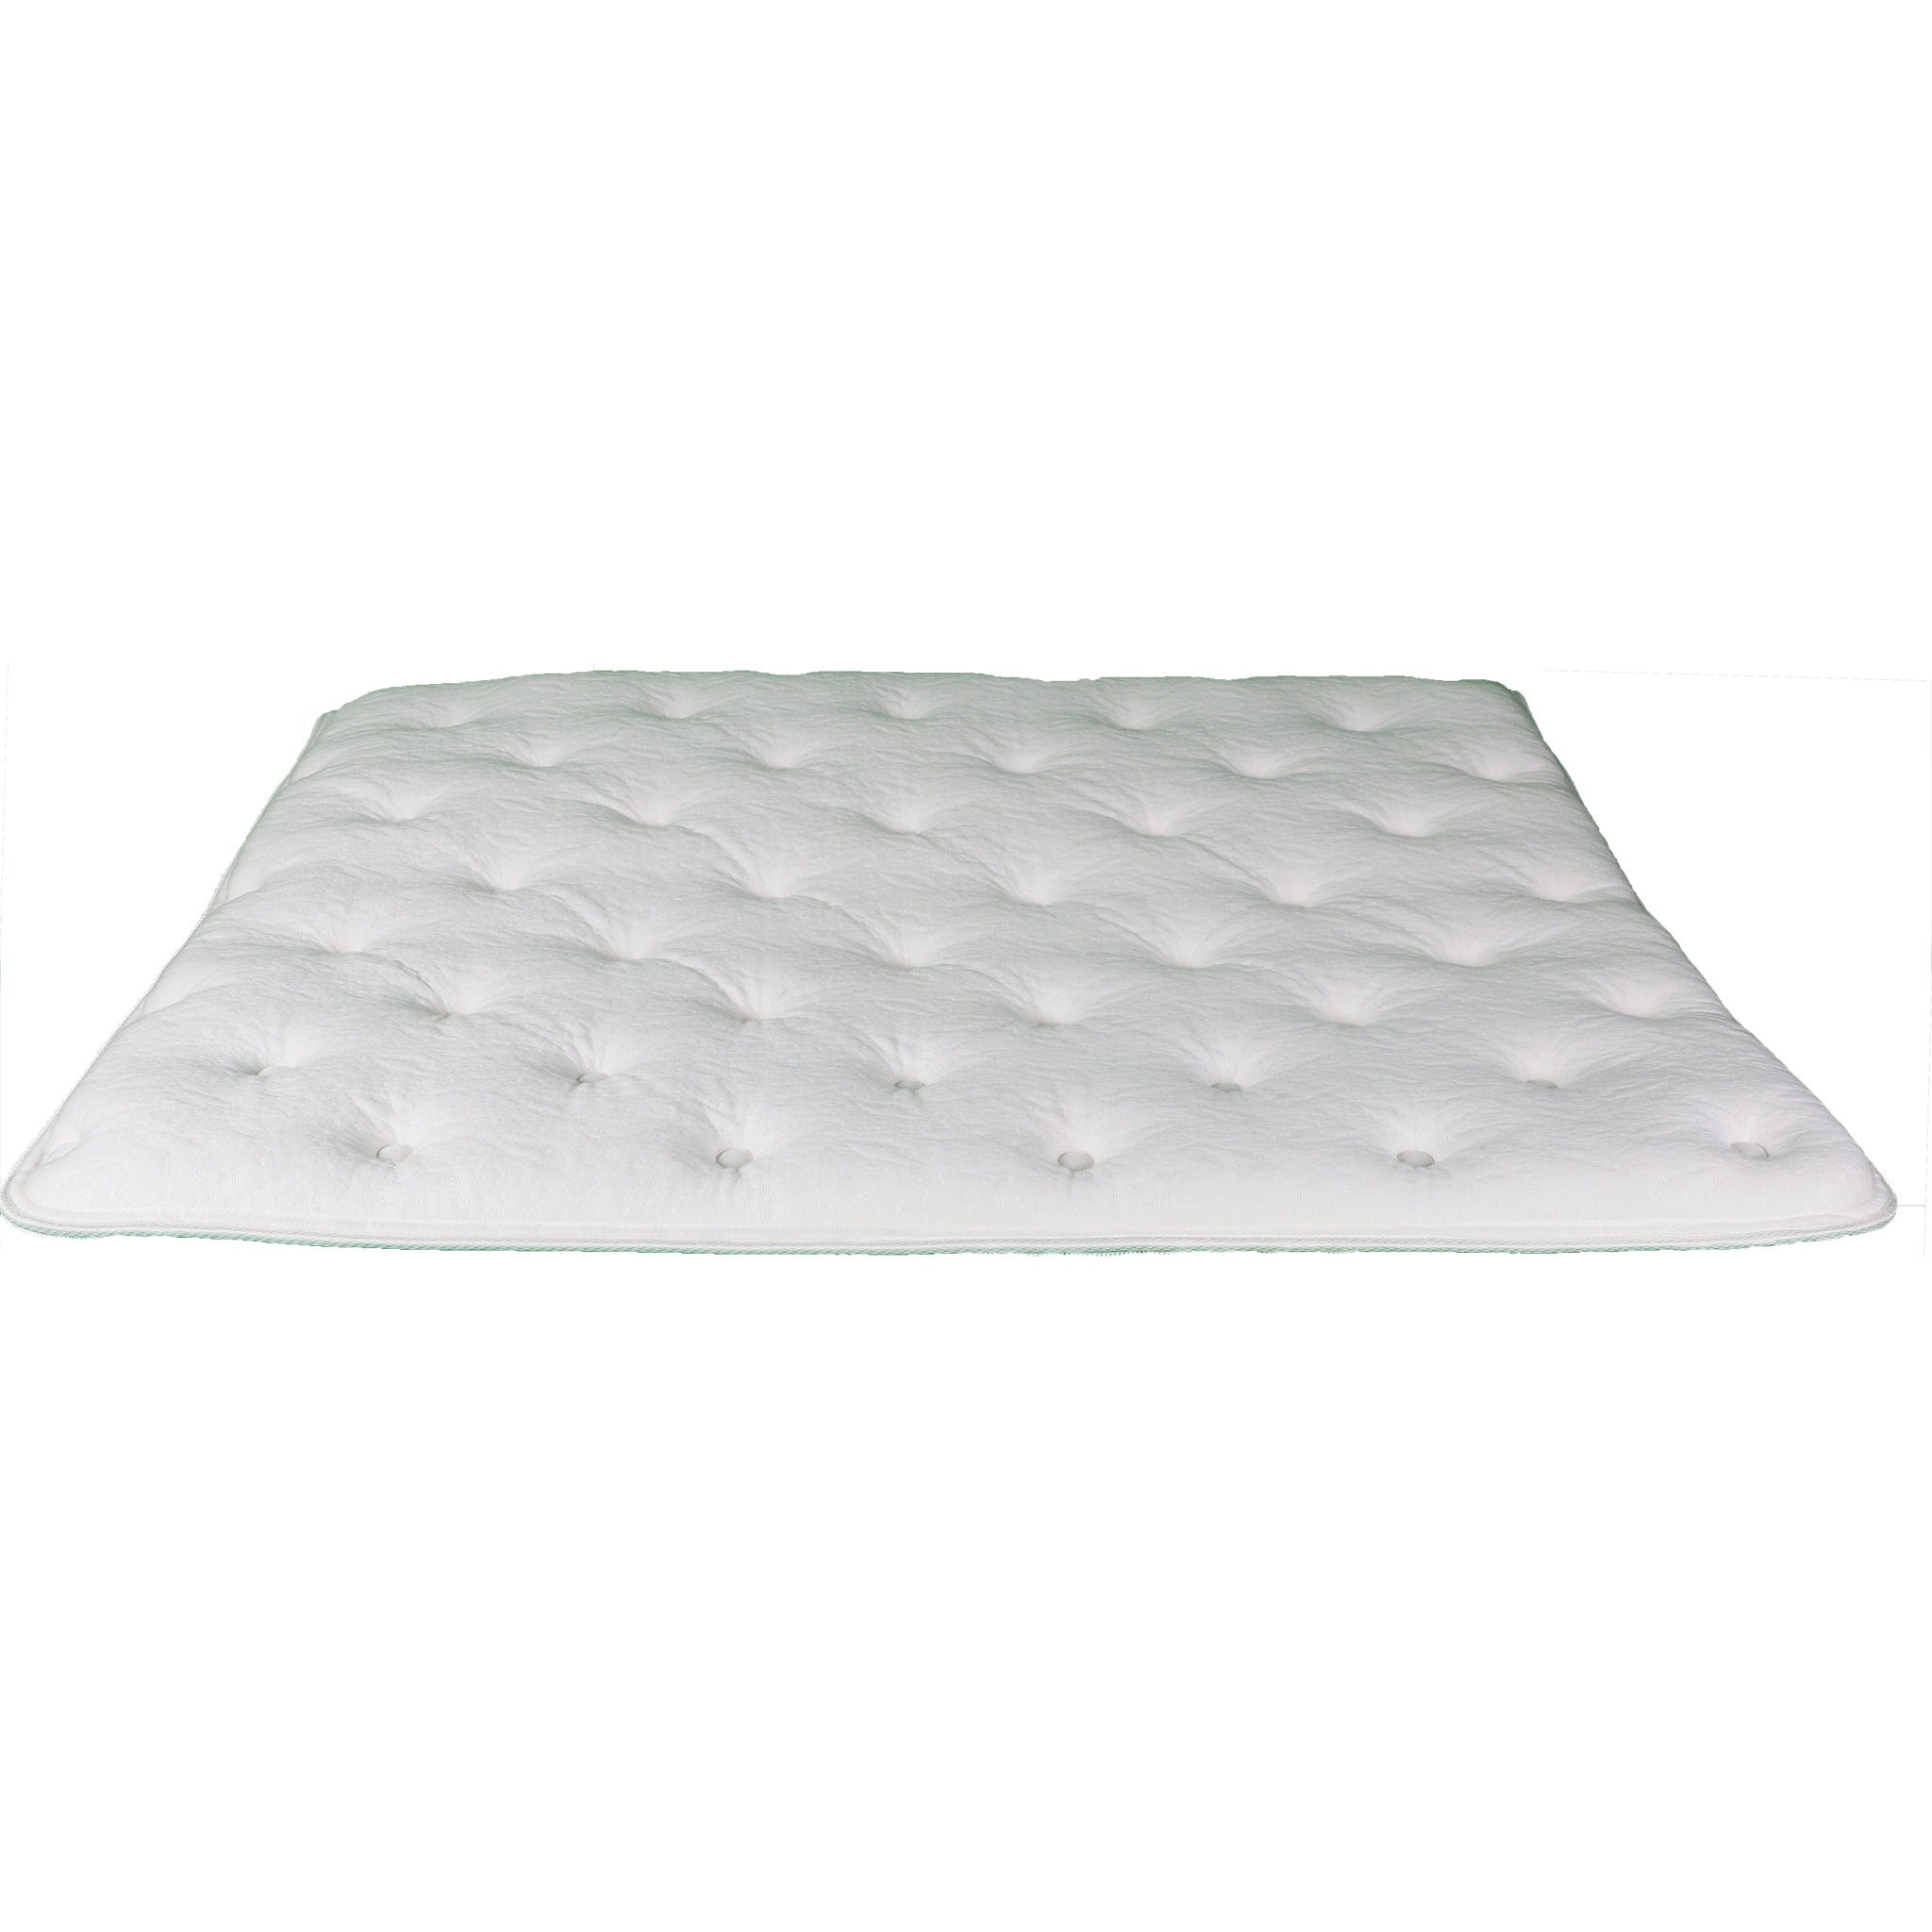 Interchangeable Replacement Zip-on Plush Top covers - Sterling Sleep Systems